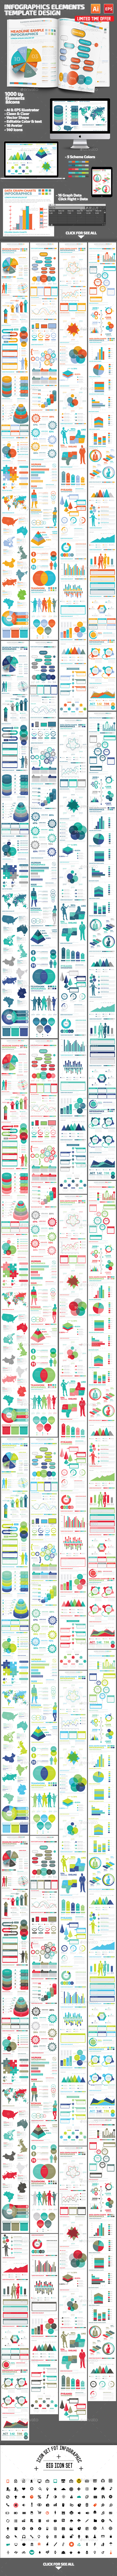 Infographics Elements Template Design - Infographics